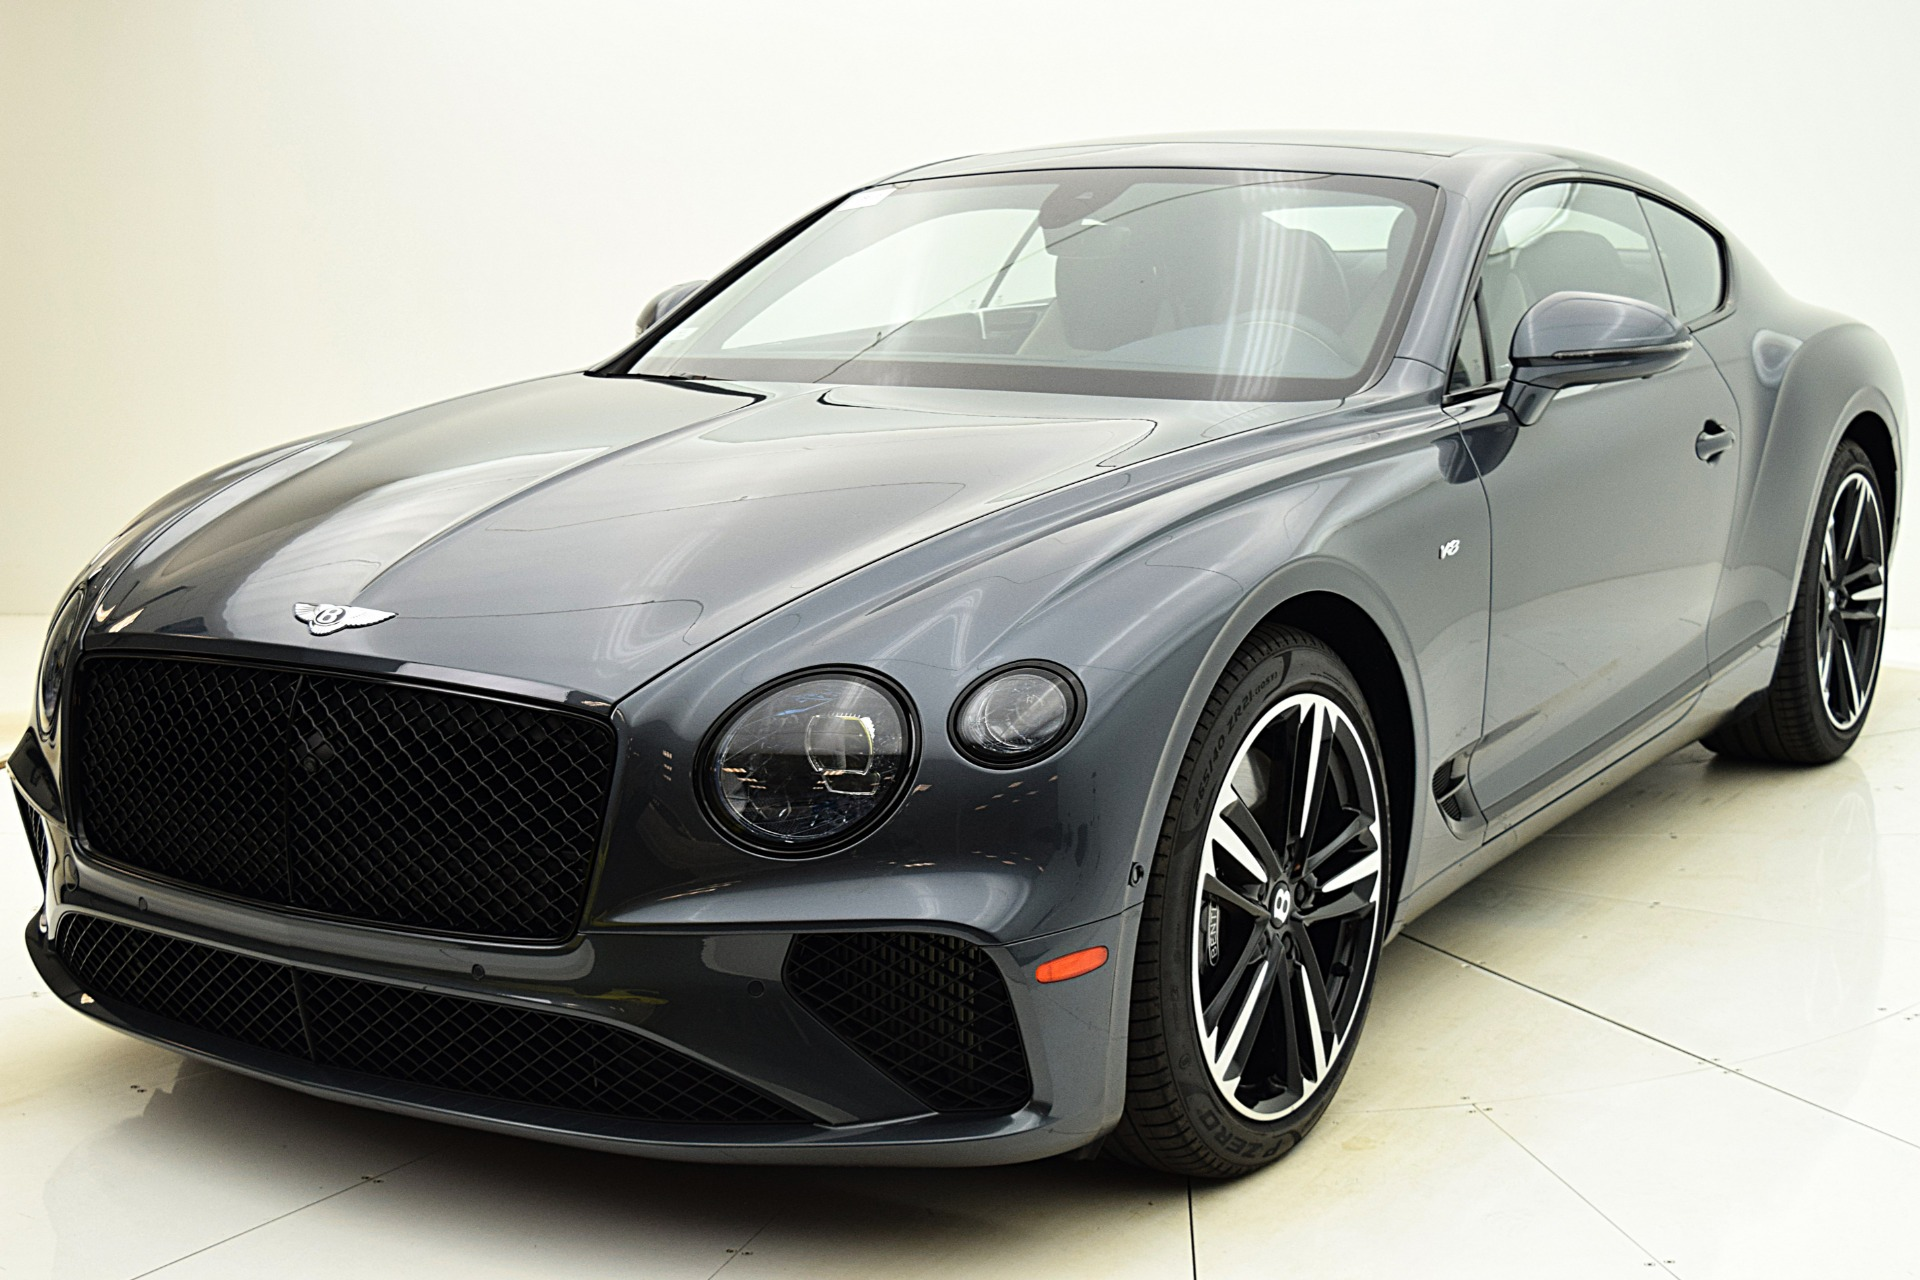 Used 2021 Bentley Continental GT V8 Coupe for sale $250,430 at F.C. Kerbeck Lamborghini Palmyra N.J. in Palmyra NJ 08065 2